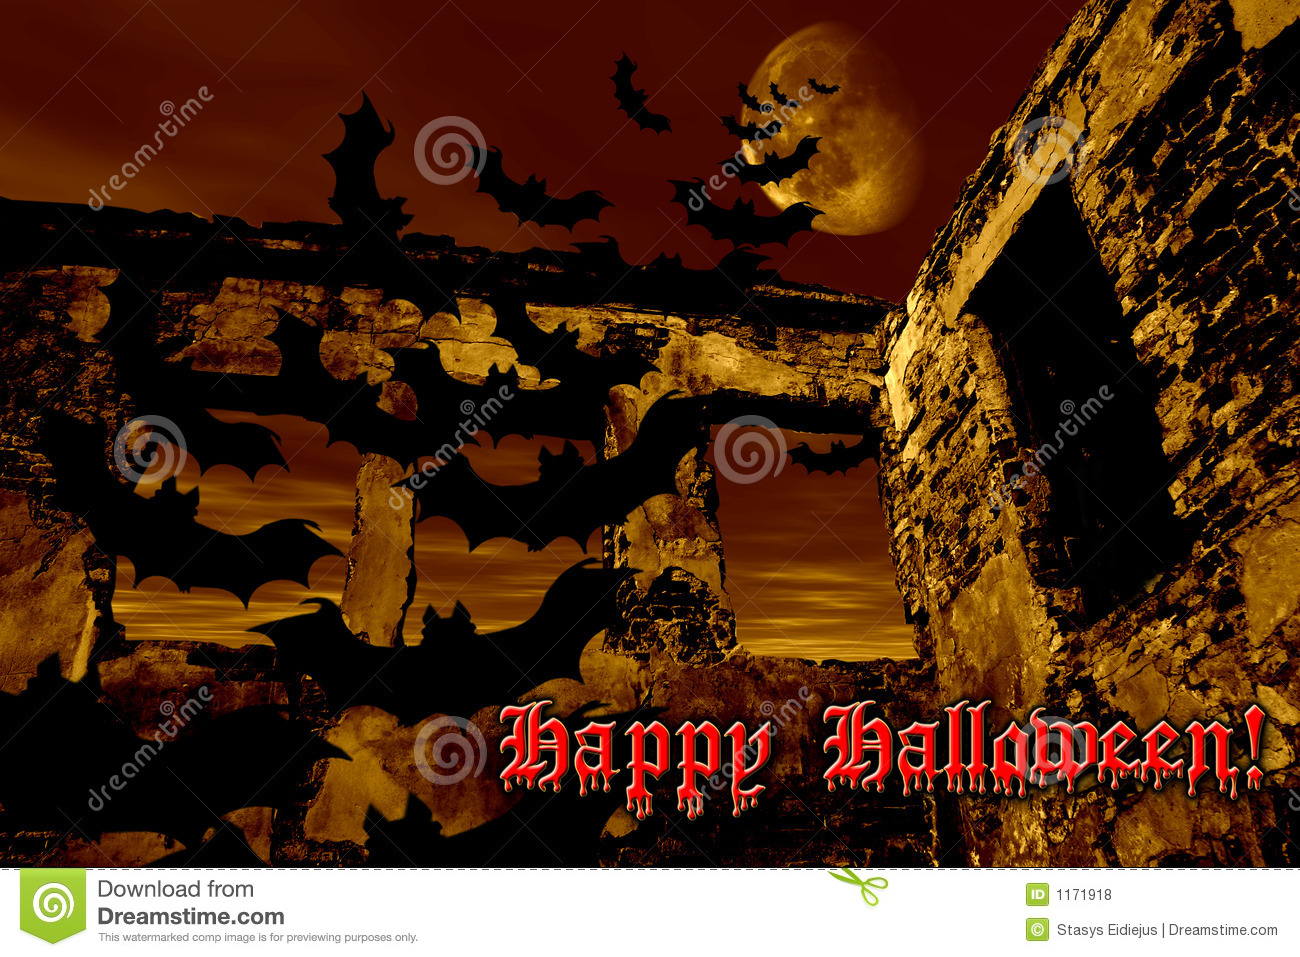 Happy Halloween. Bats are flying over the old ruin